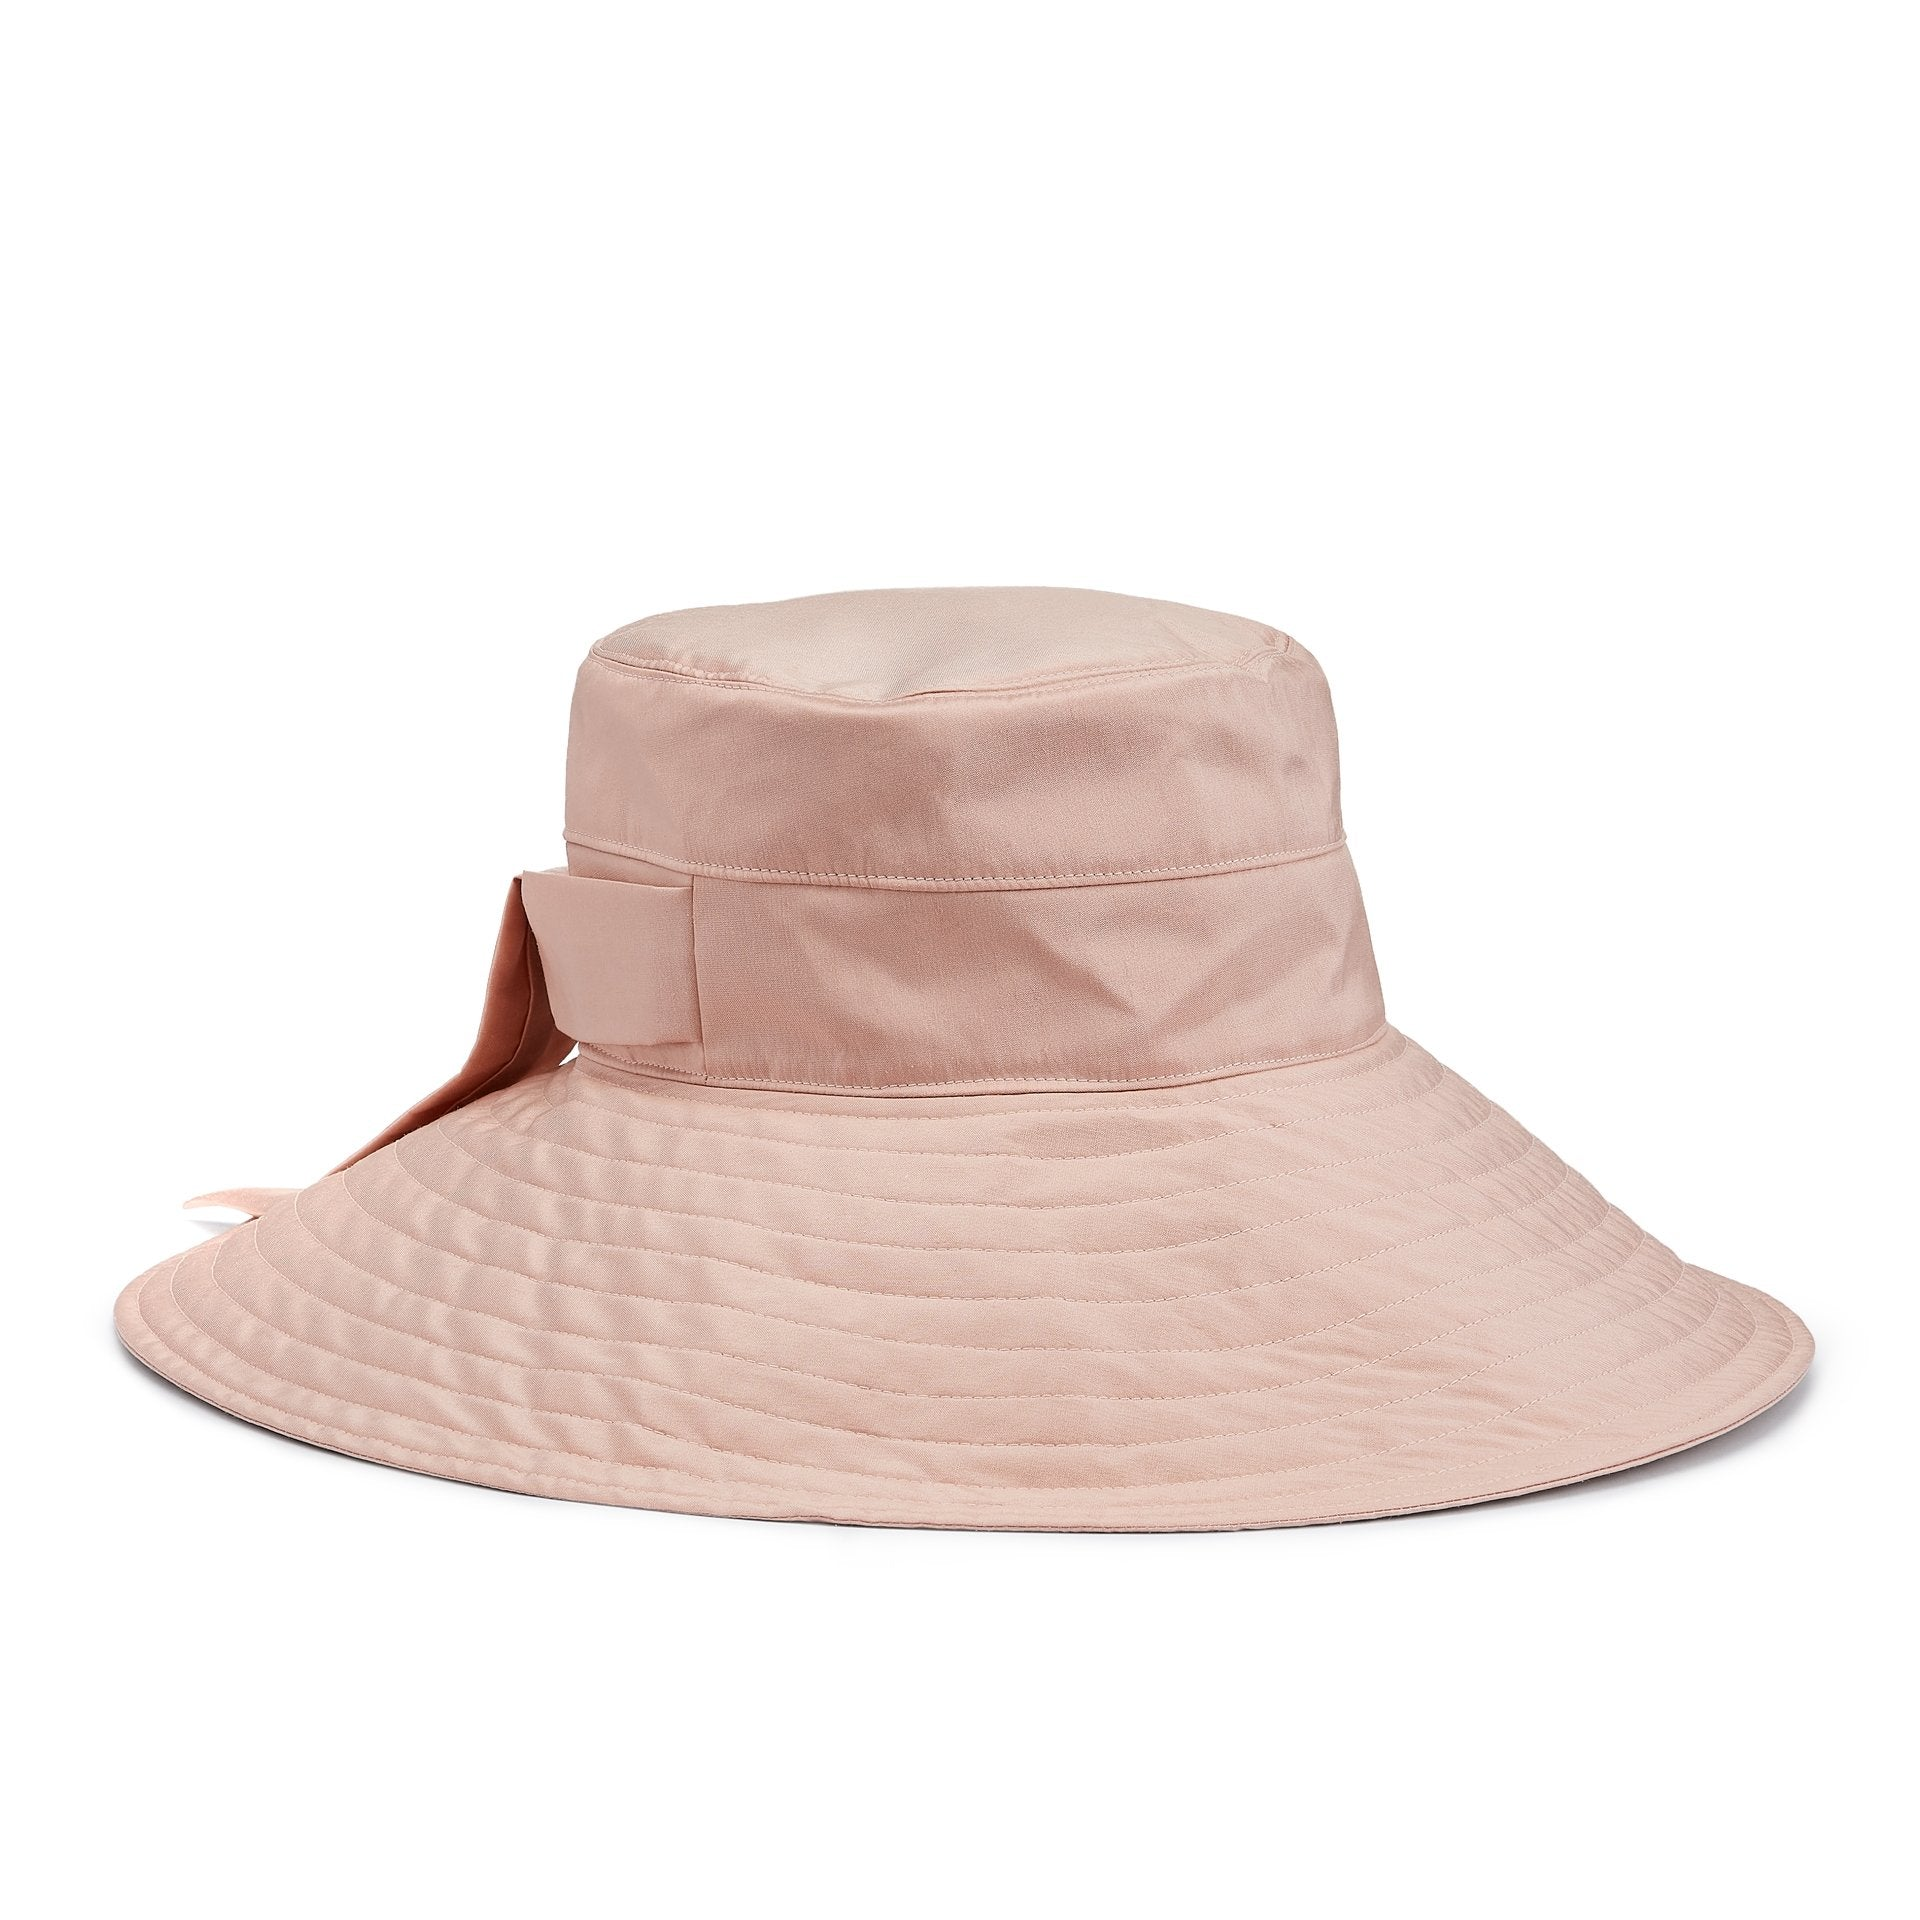 Clemence silk sun hat - Women's hats - Lock & Co. Hatters London UK